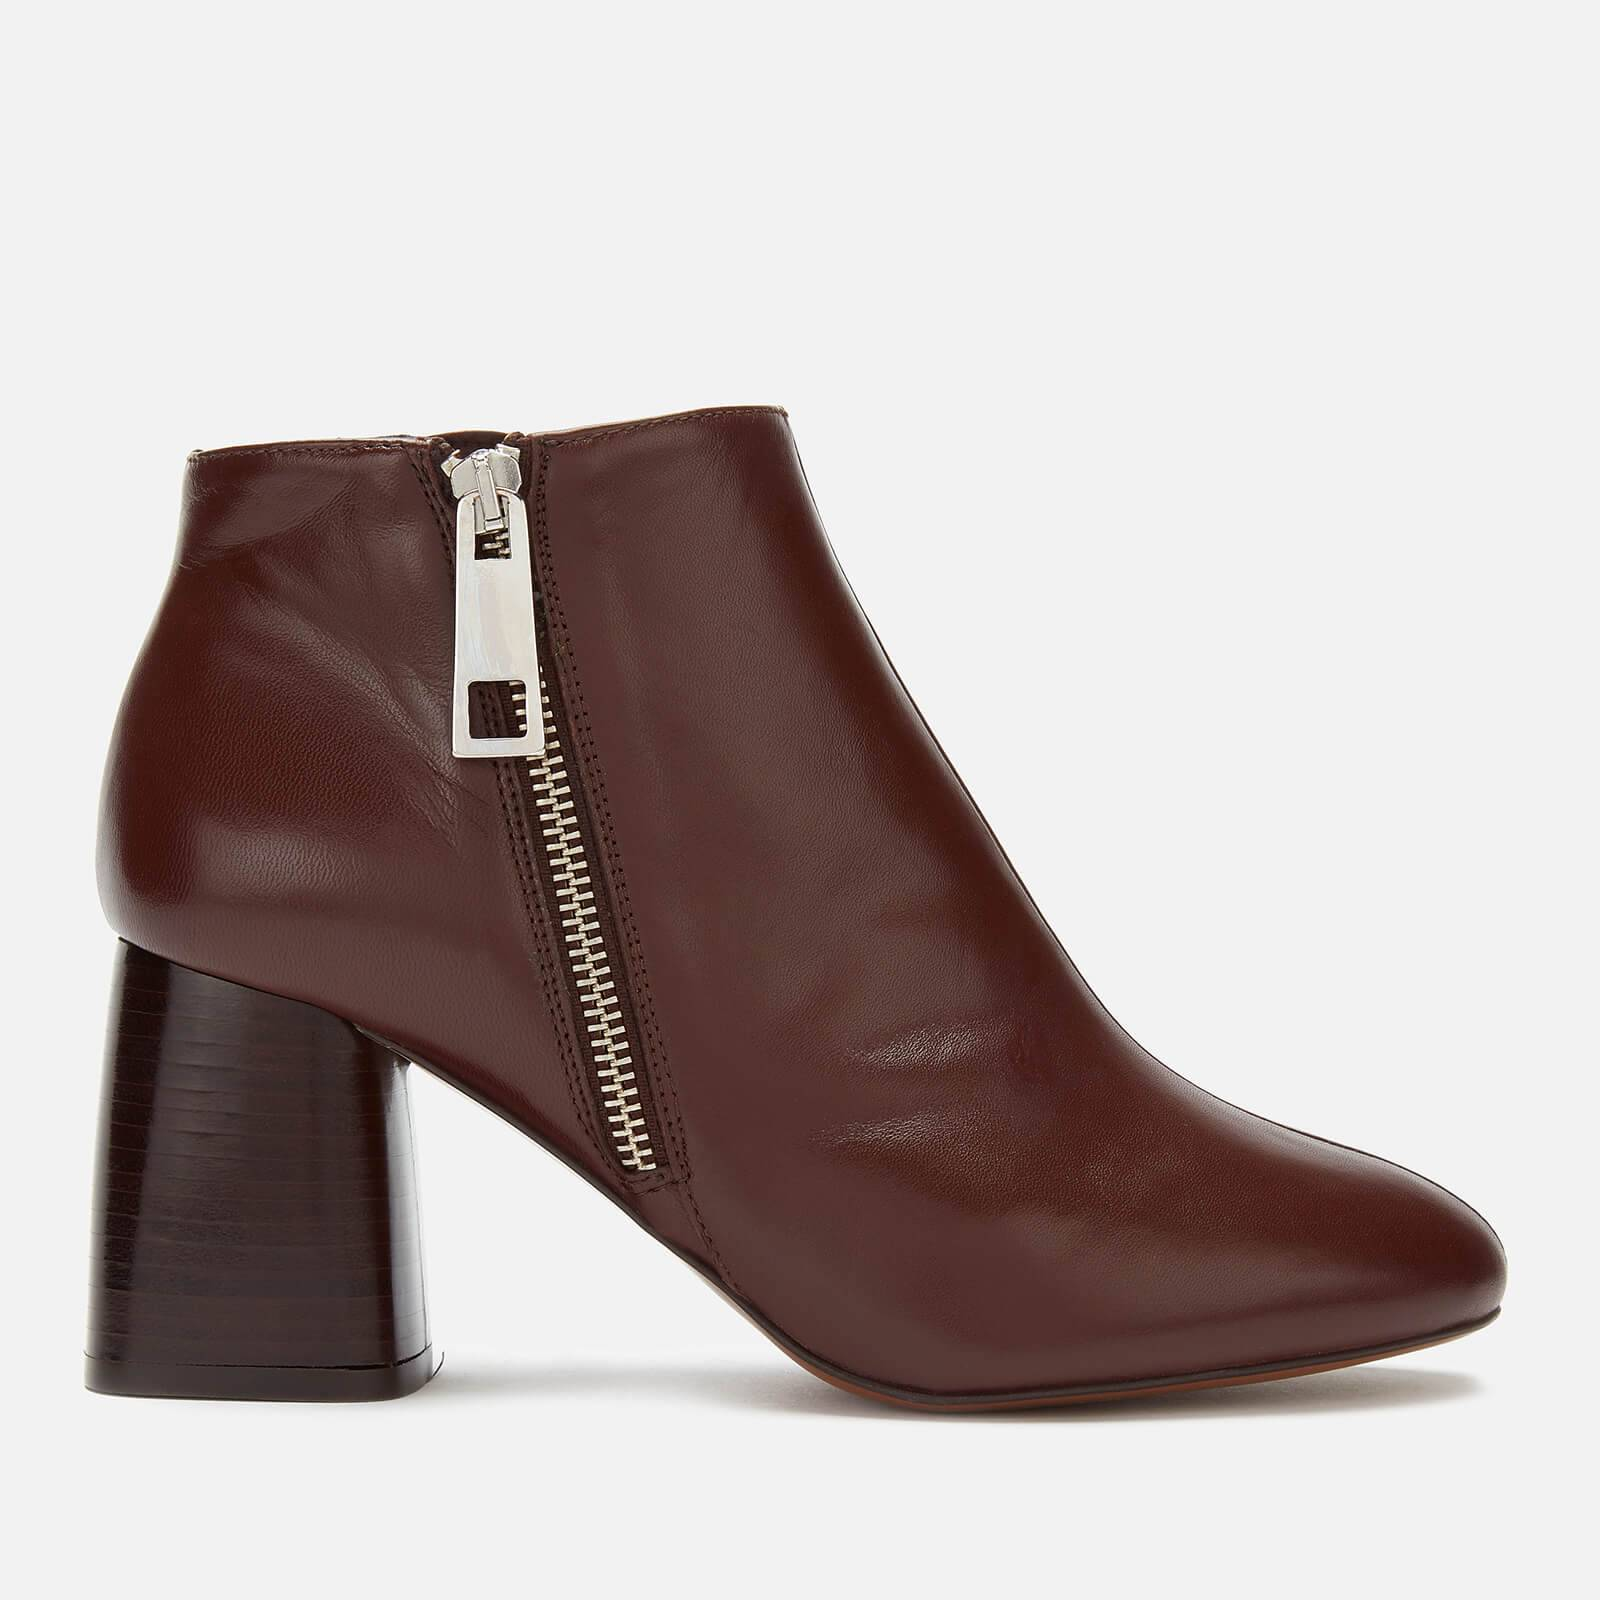 Whistles Women's Pippa Side Zip Boots - Brown - UK 5